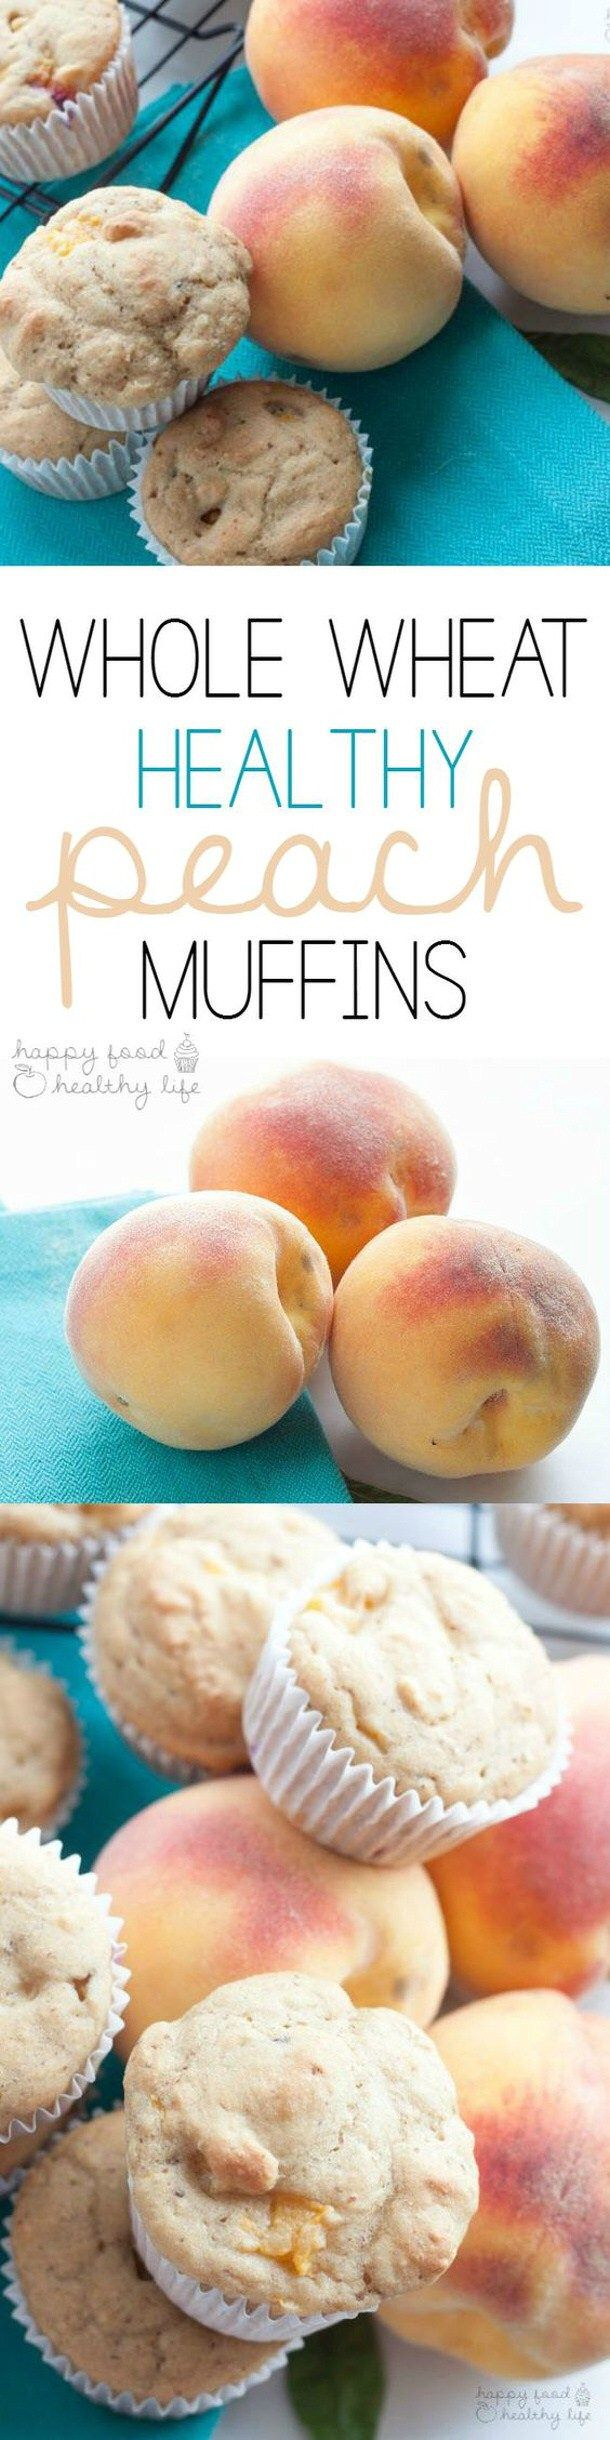 Healthy Snacks - Whole Wheat Healthy Peach Muffins Recipe via Happy Food Healthy Life